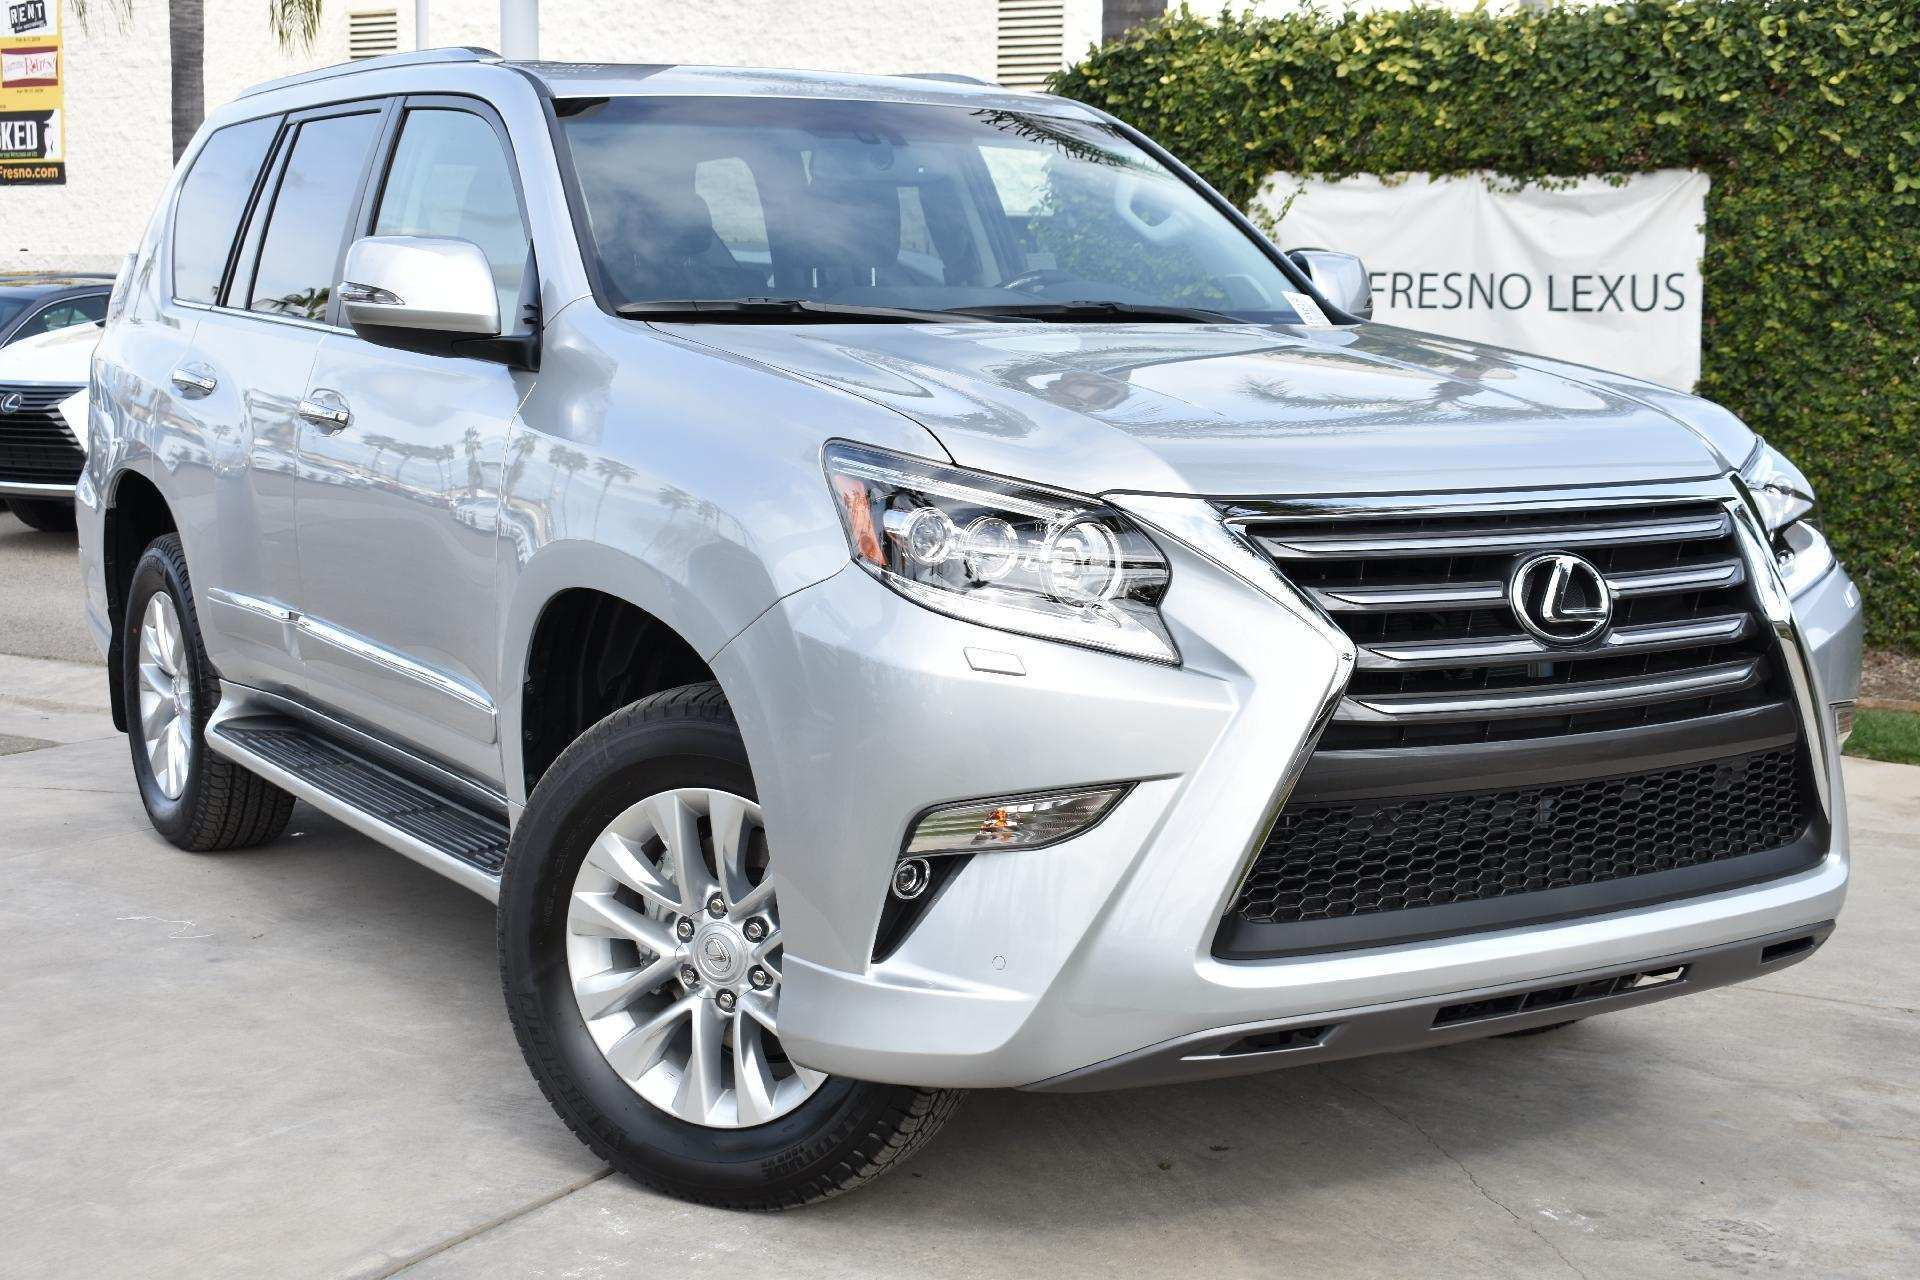 83 New 2019 Lexus Gx 460 Exterior and Interior for 2019 Lexus Gx 460